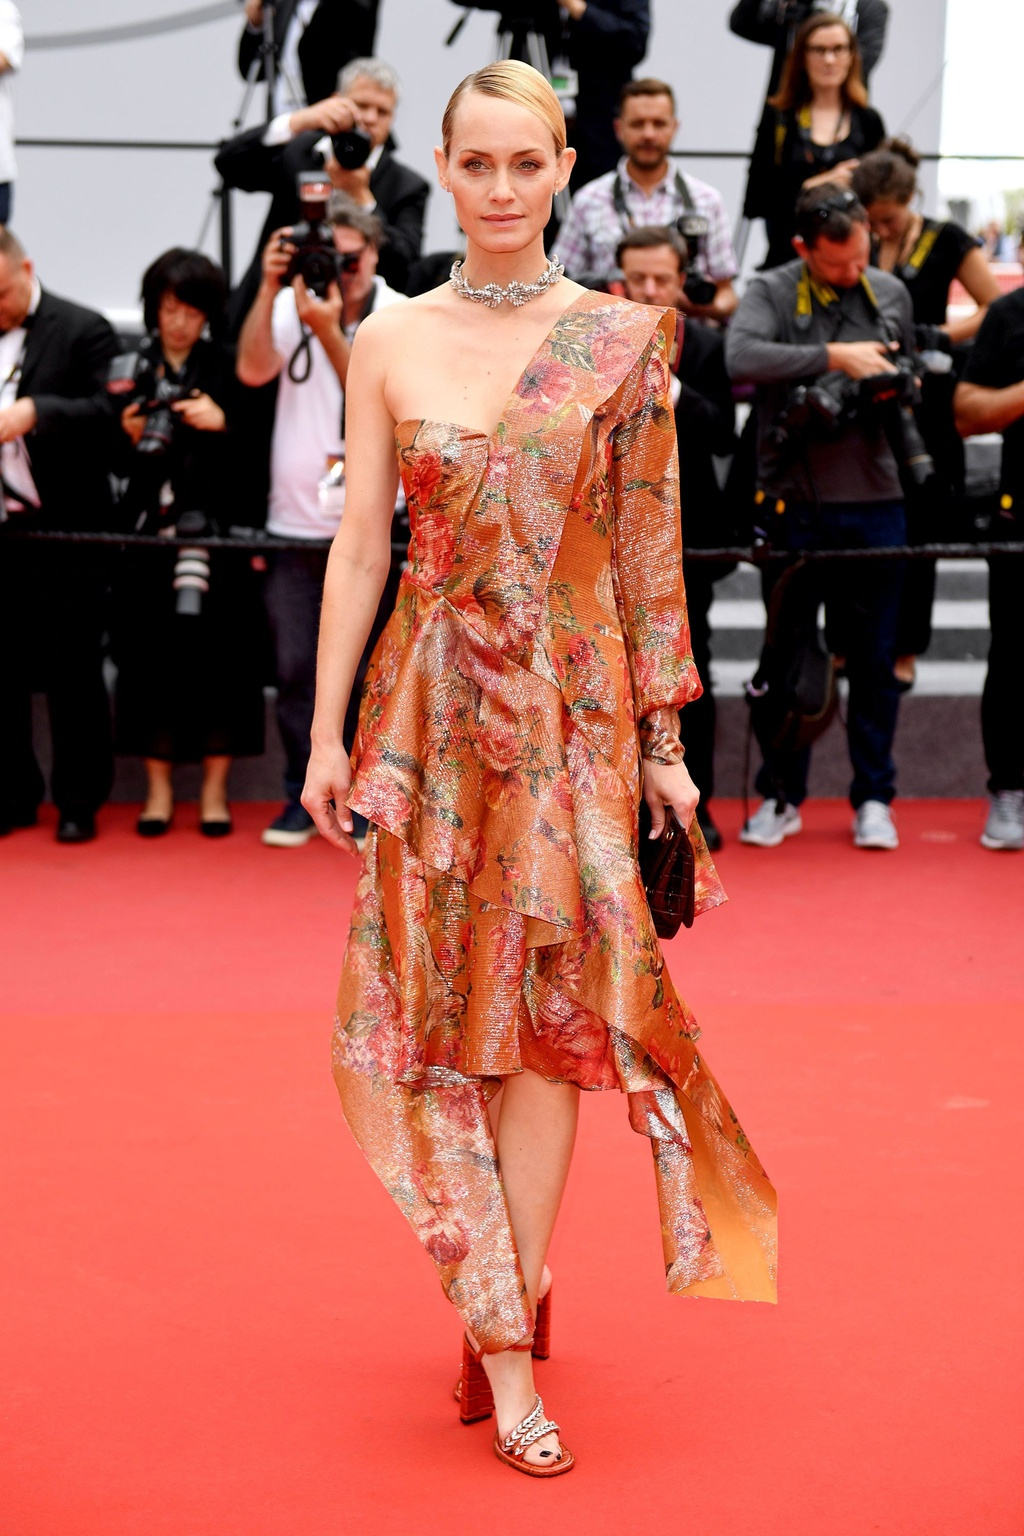 Ly Vu Xuan bat ngo tro thanh hien tuong tham do Cannes hinh anh 10